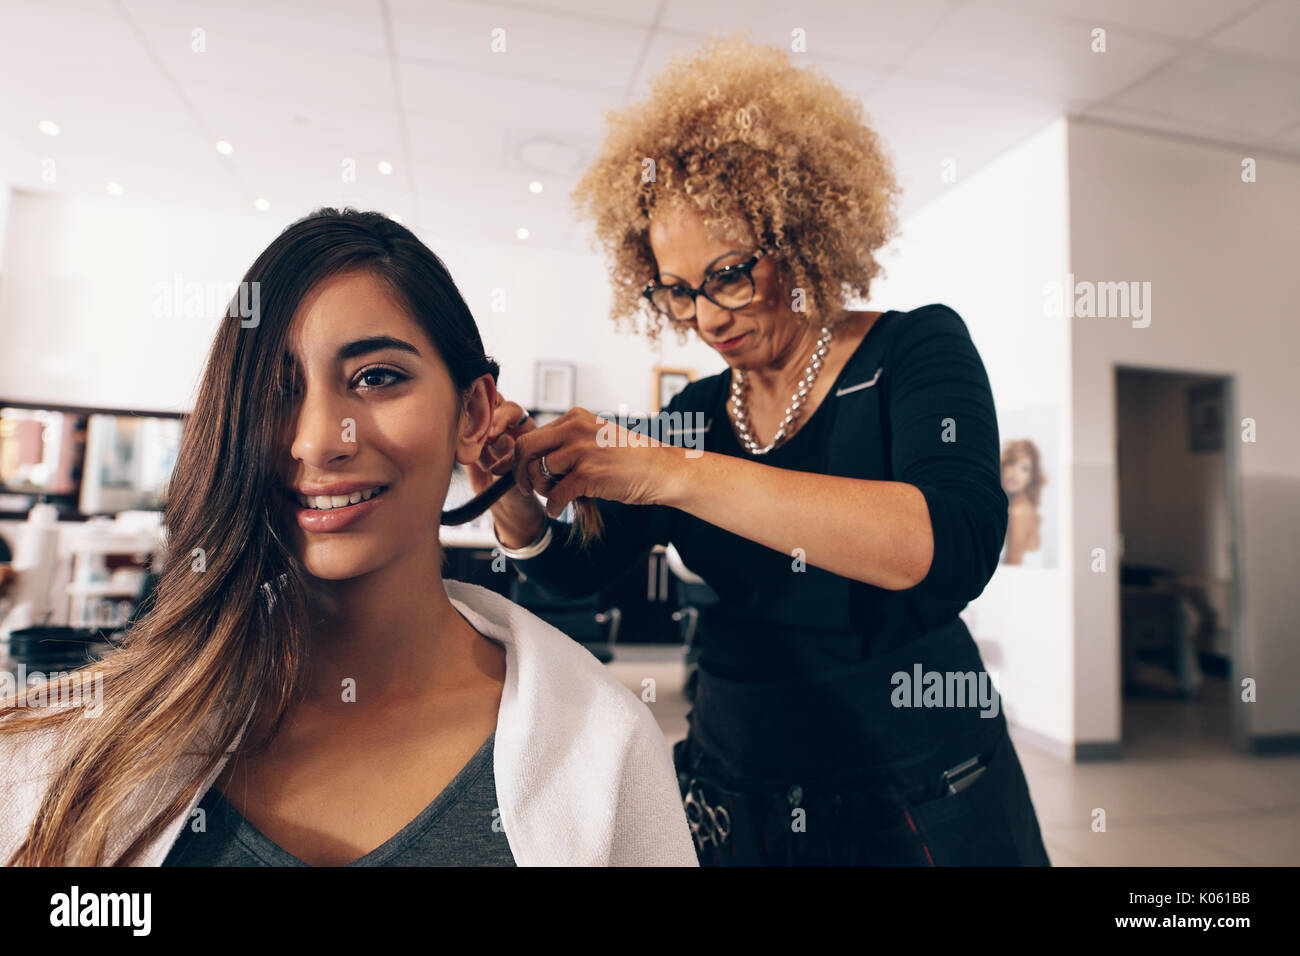 Woman hairdresser at work in salon. Young woman getting a stylish hairdo done at salon. - Stock Image